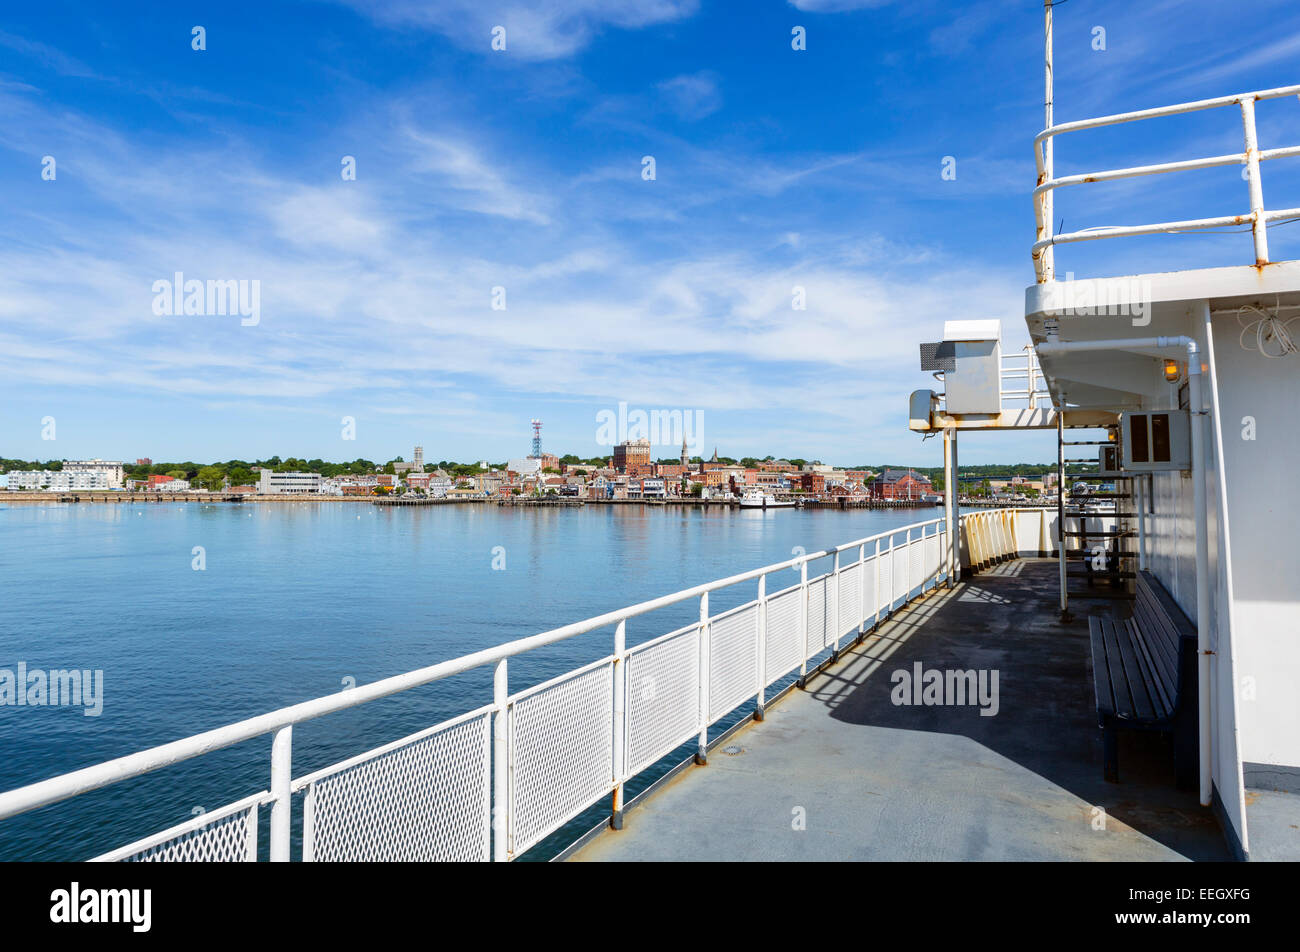 The Cross Sound Ferry on the Thames River approaching New London, CT, North Eastern USA - Stock Image